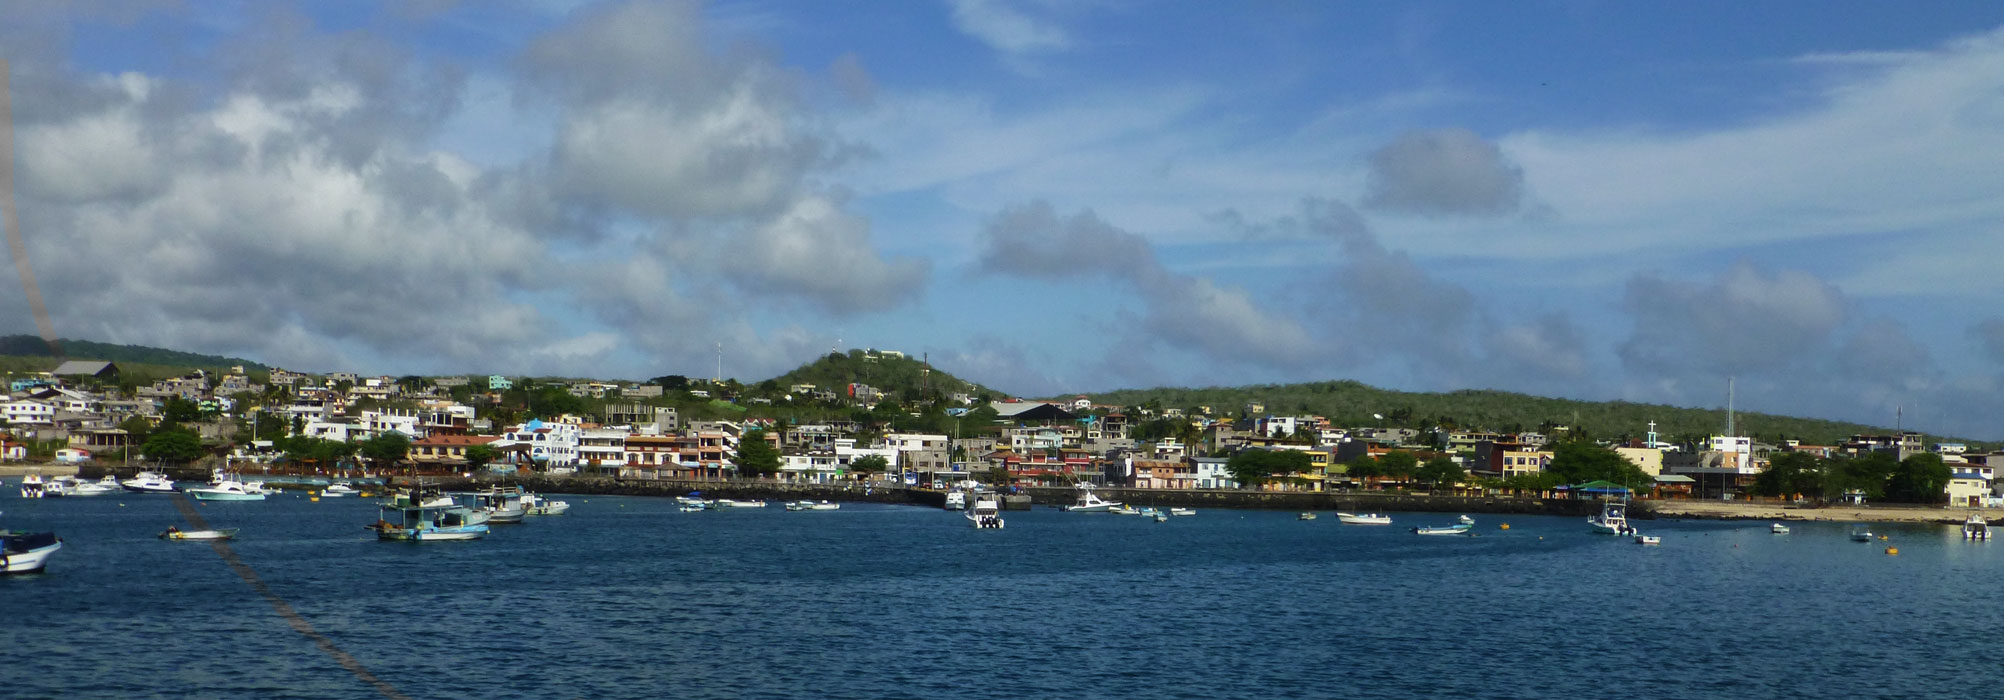 The city of Puerto Baquerizo Moreno as viewed from our boat.